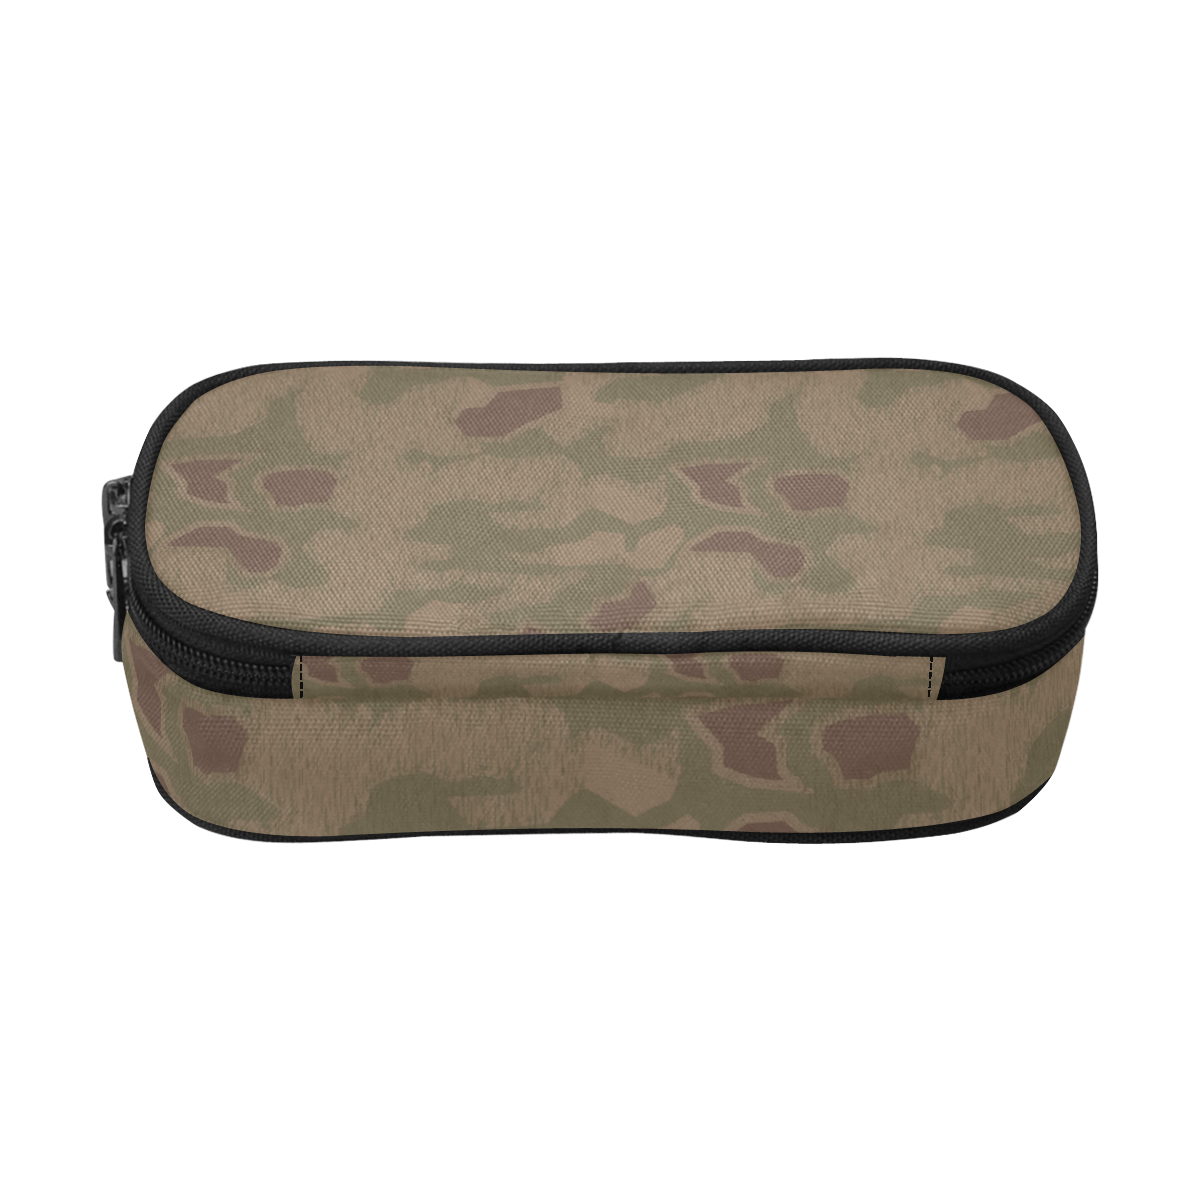 Germany WWII Sumpfmuster 43 camouflage Pencil Pouch/Large (Model 1680)